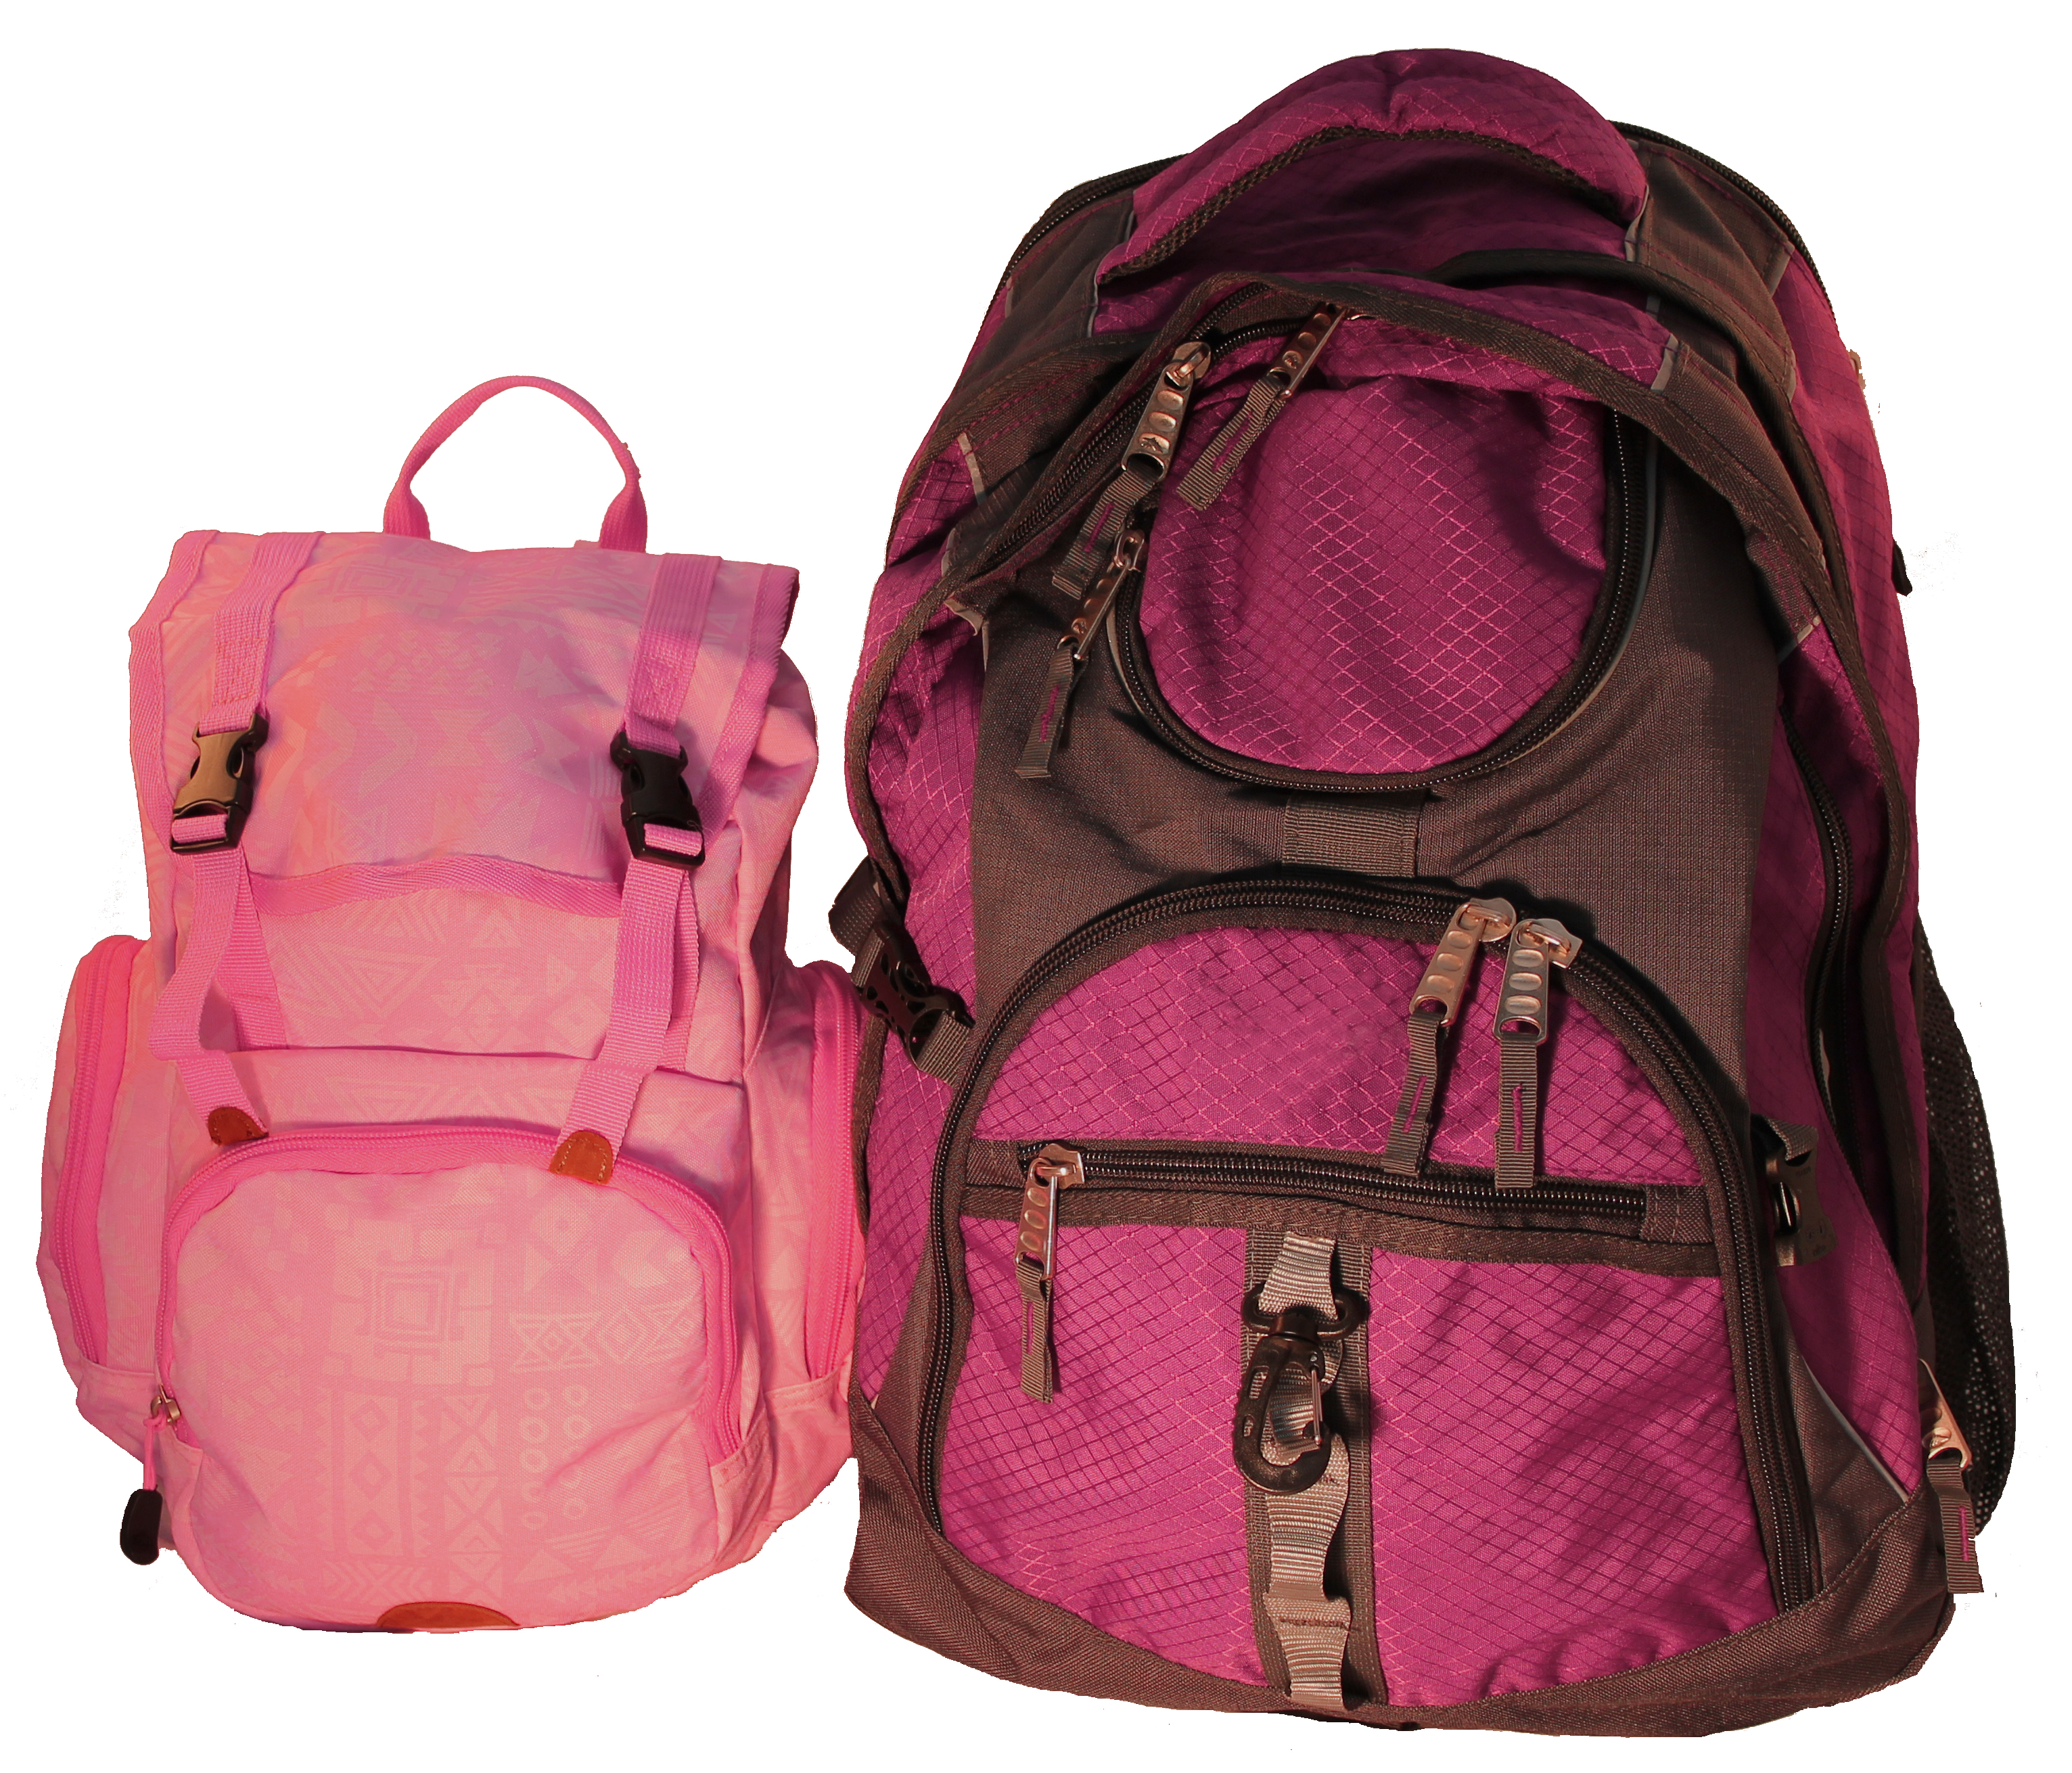 Comparing My Childs Pack and Guardian